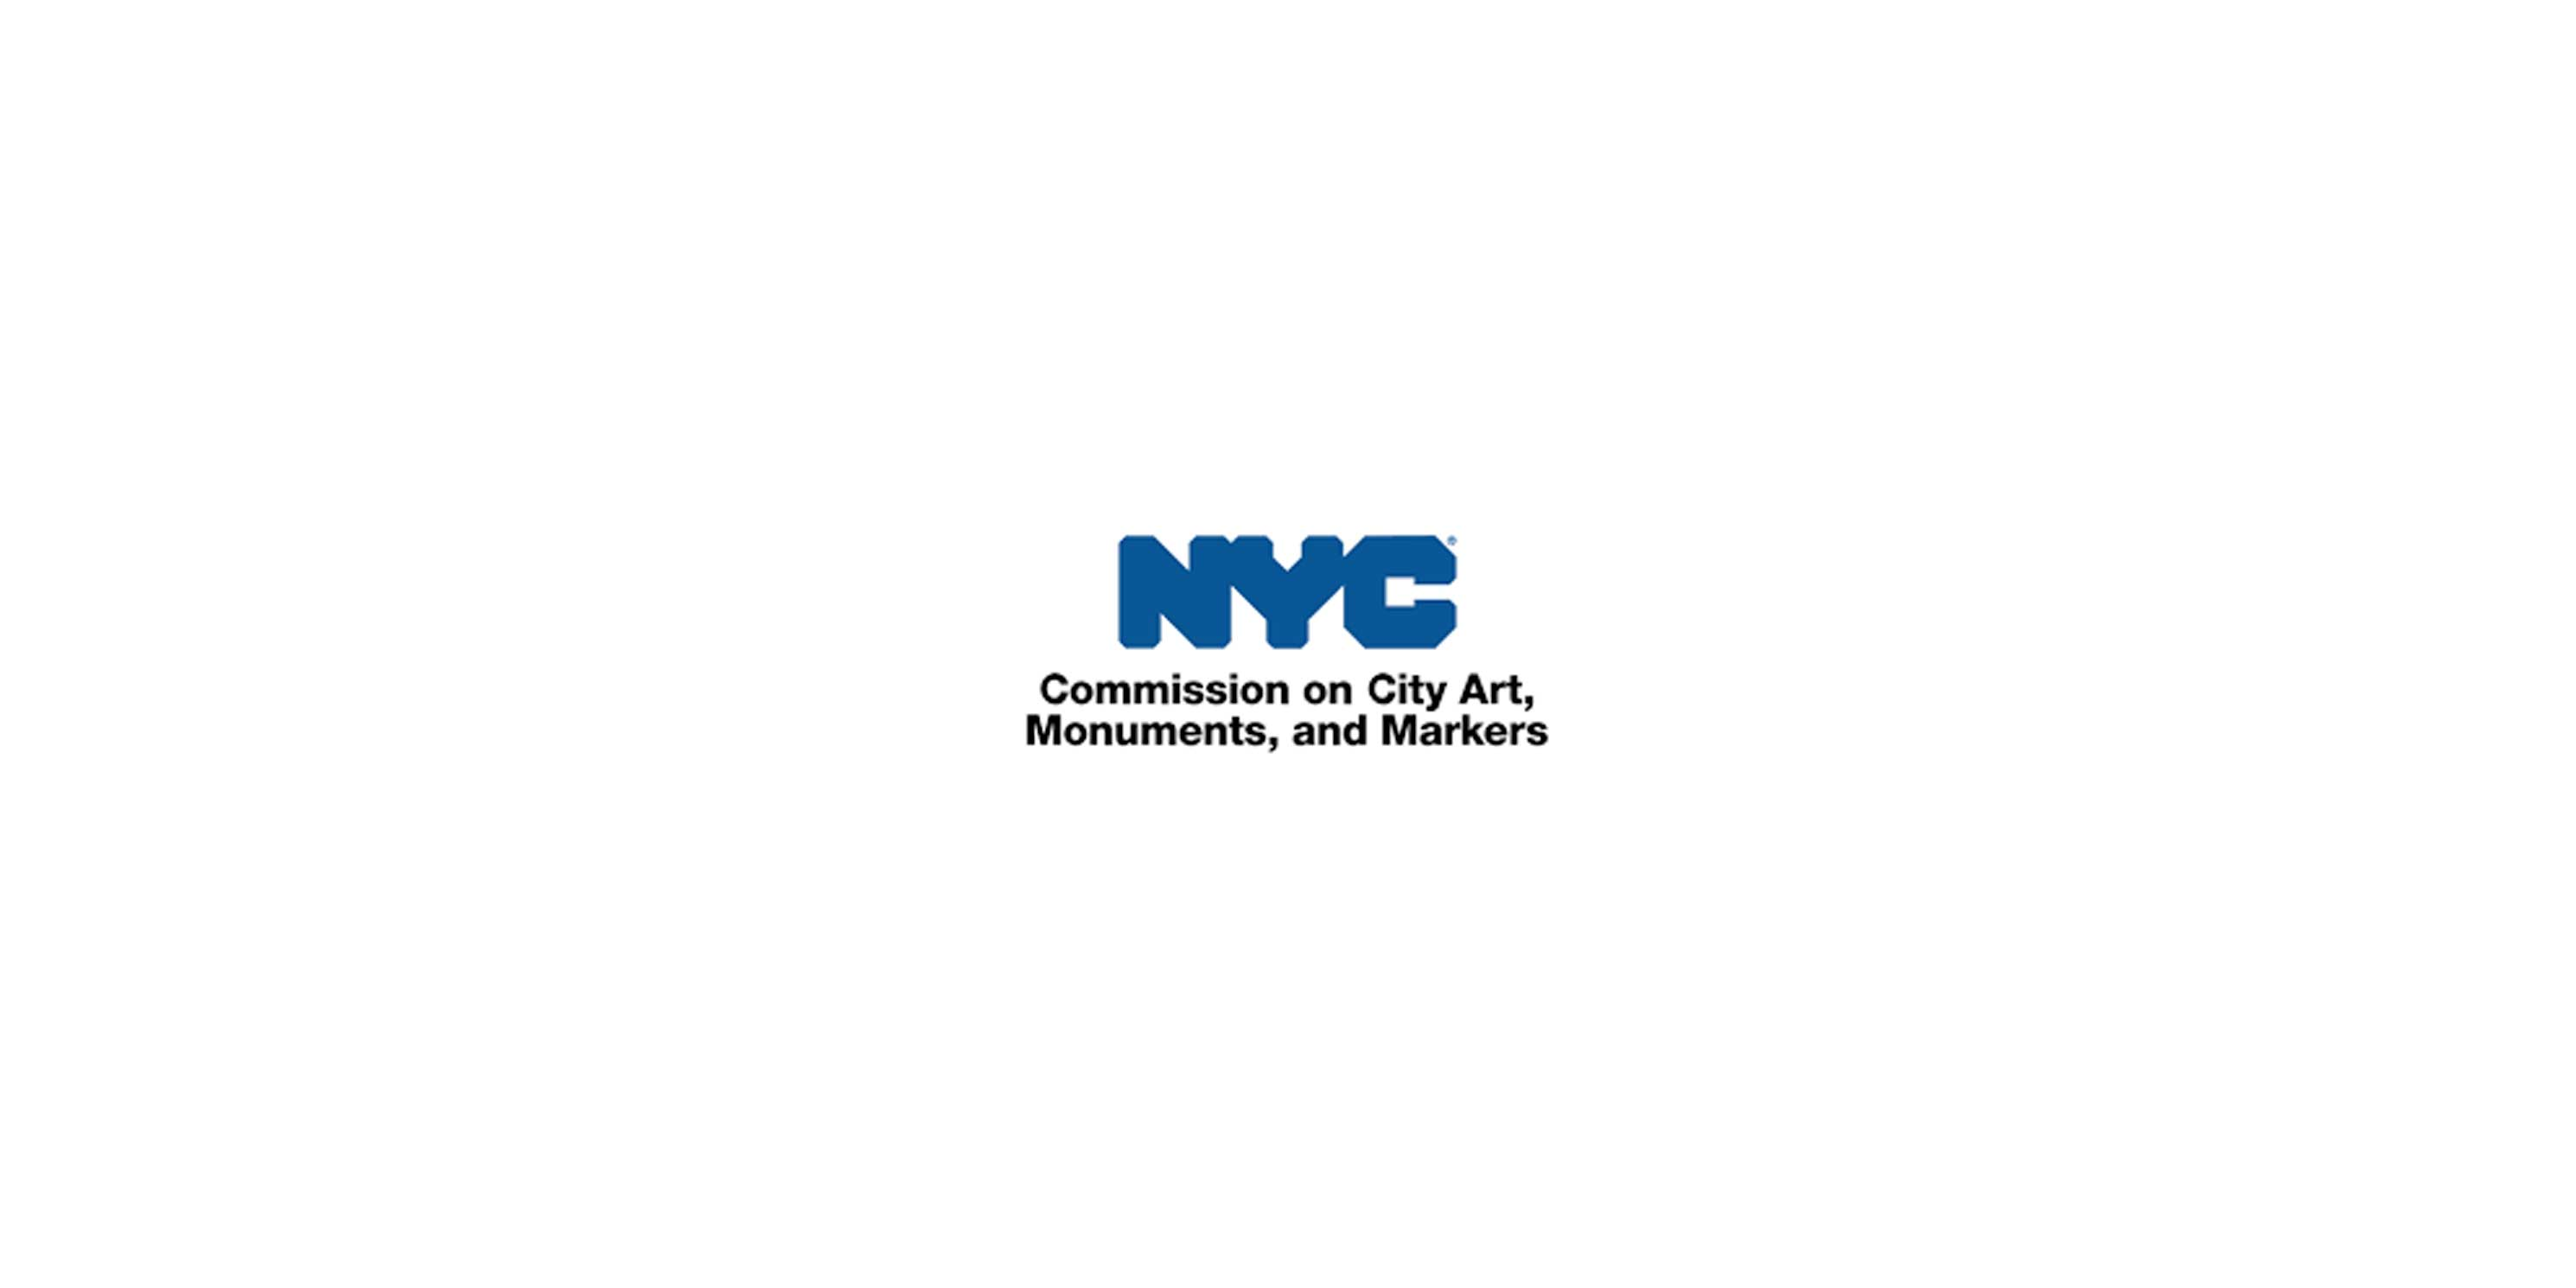 logo for New York City Commission on City Art, Monuments, and Markers